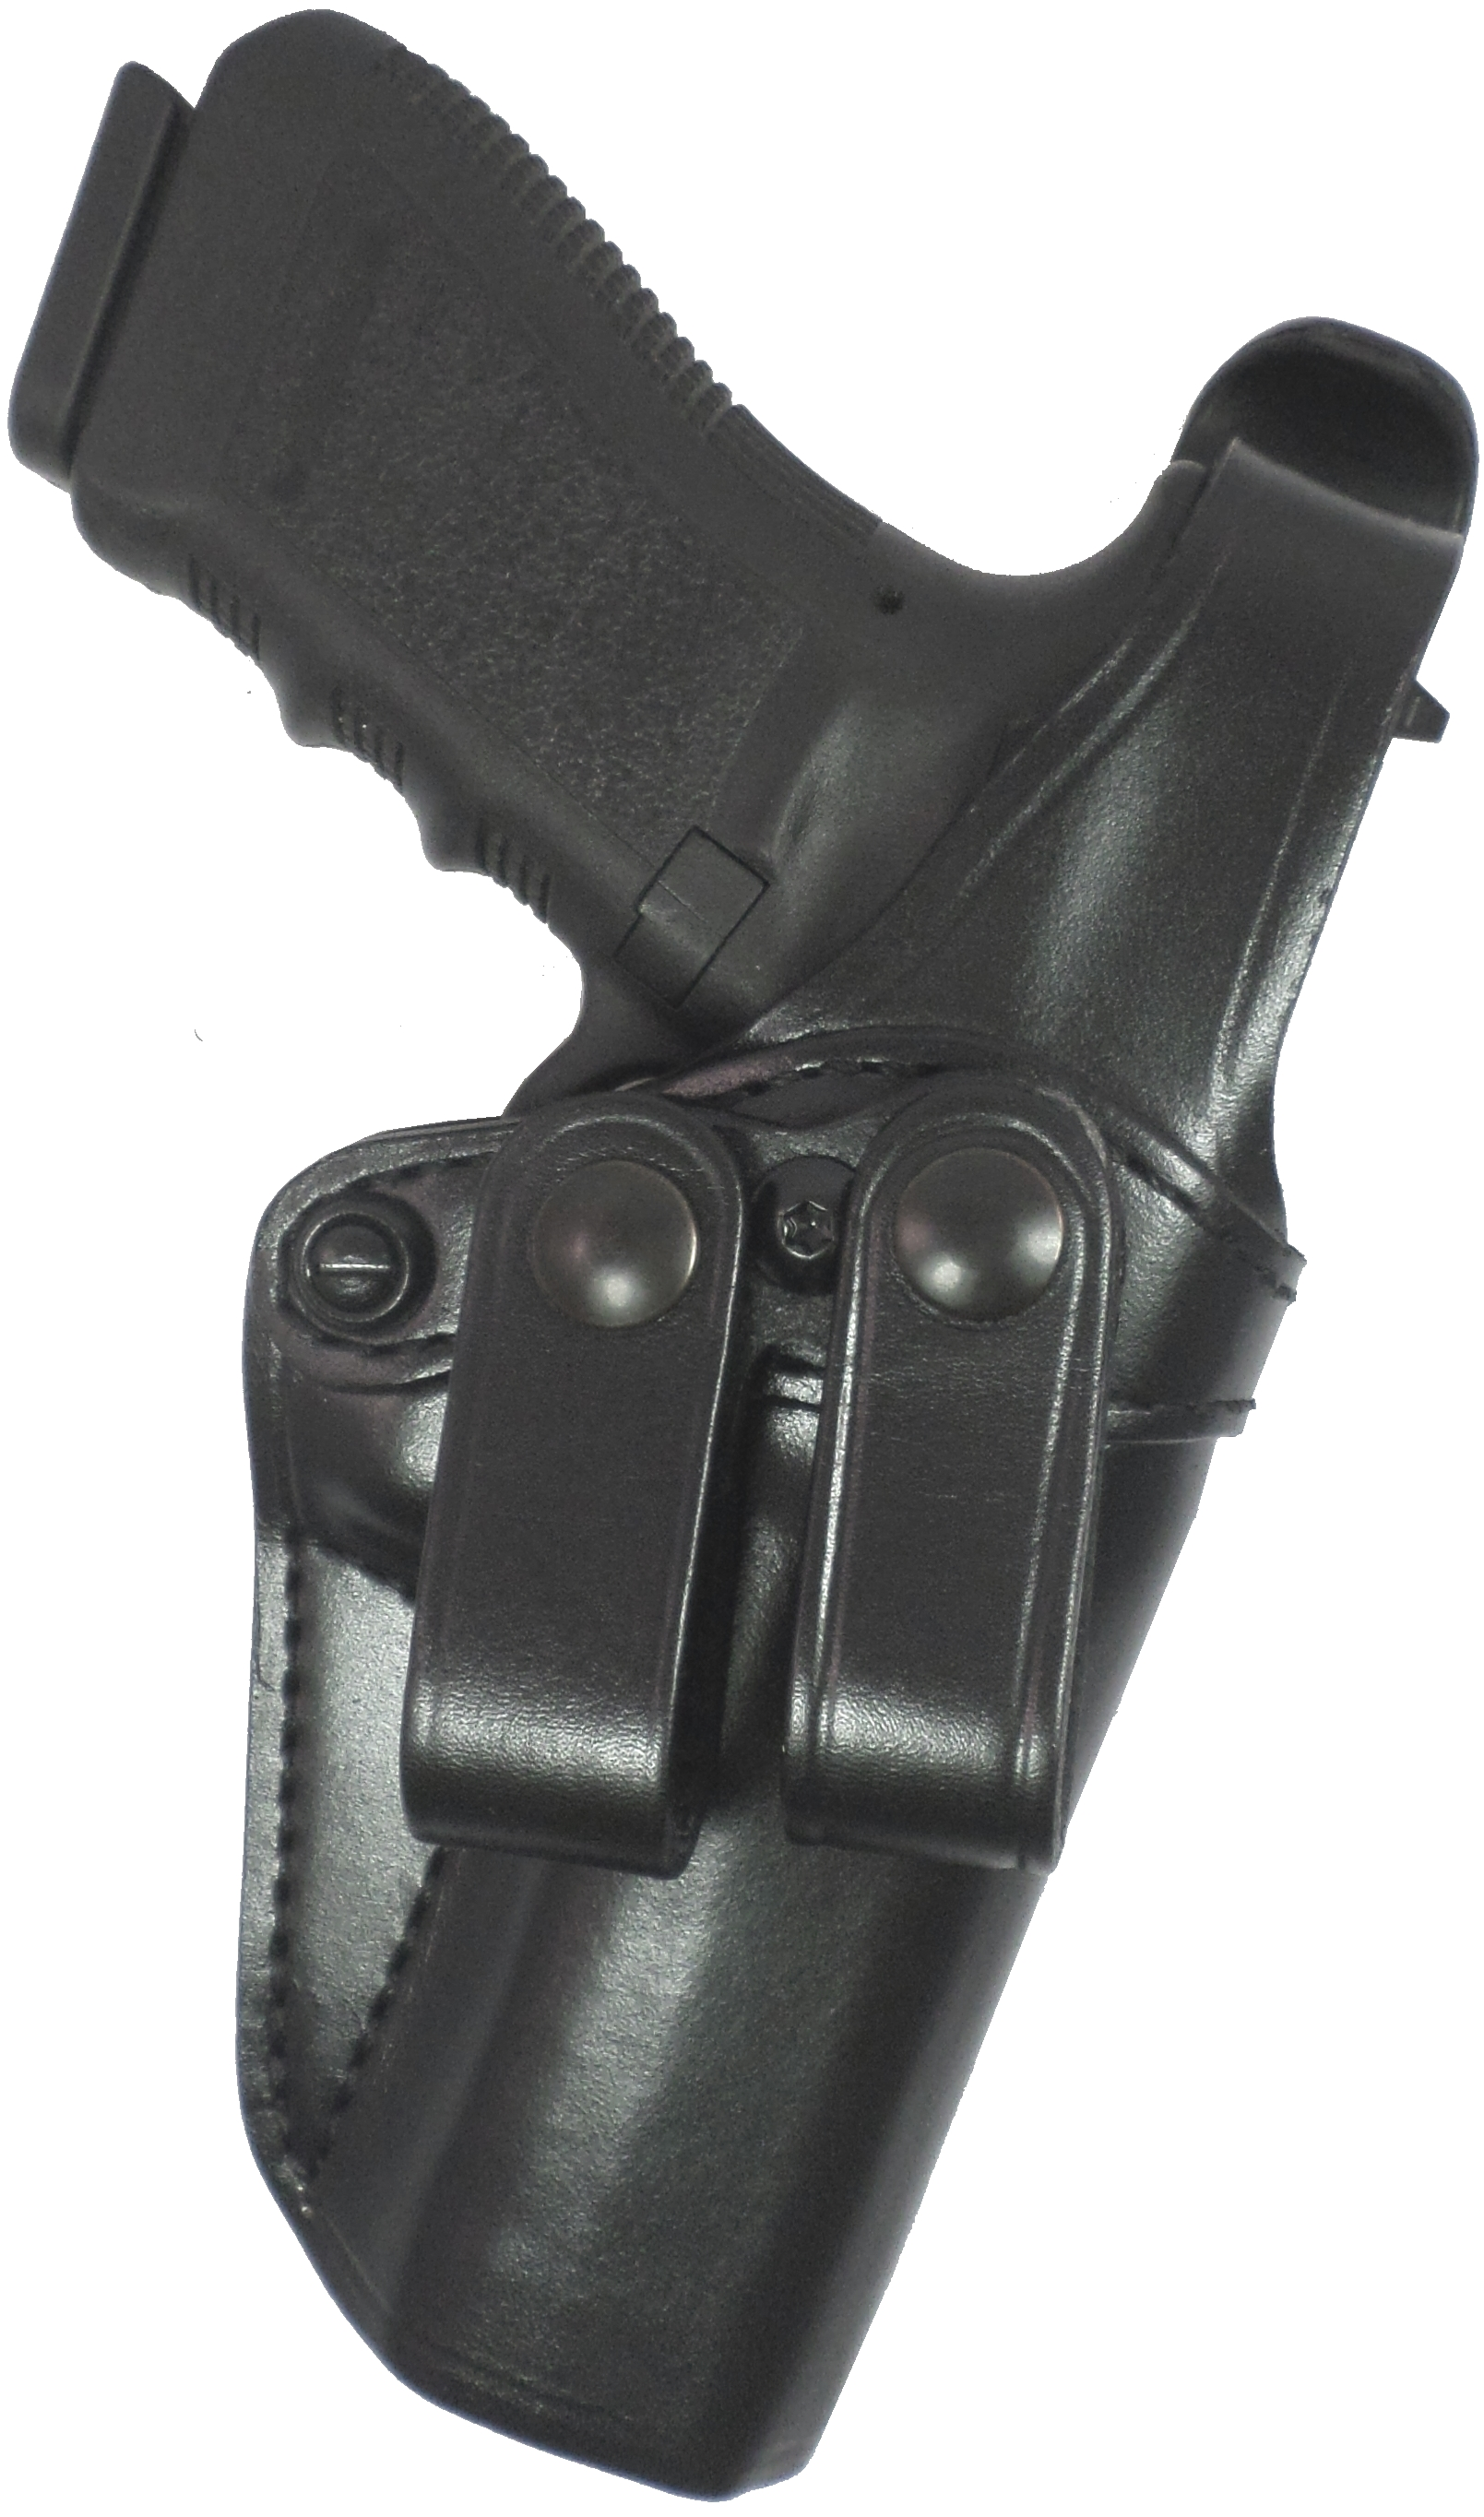 New Gould & Goodrich B813 and 897 Holsters, 676 Duty Flashlight Holder